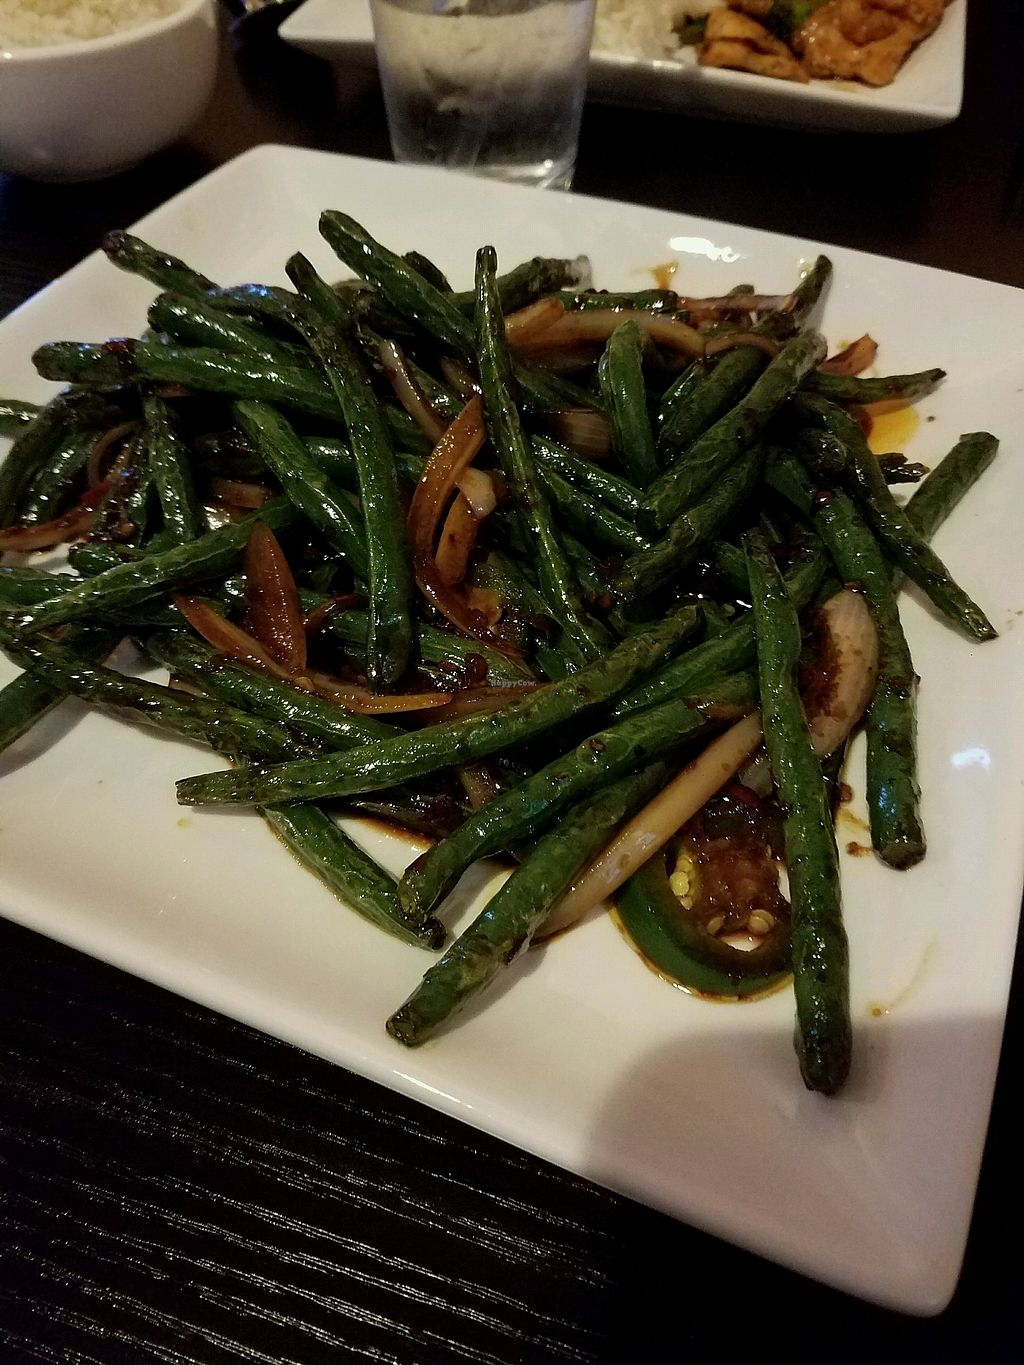 """Photo of Z's Asian Bistro  by <a href=""""/members/profile/Silly%20Little%20Vegan"""">Silly Little Vegan</a> <br/>Ma La String Beans <br/> March 11, 2018  - <a href='/contact/abuse/image/114265/369394'>Report</a>"""